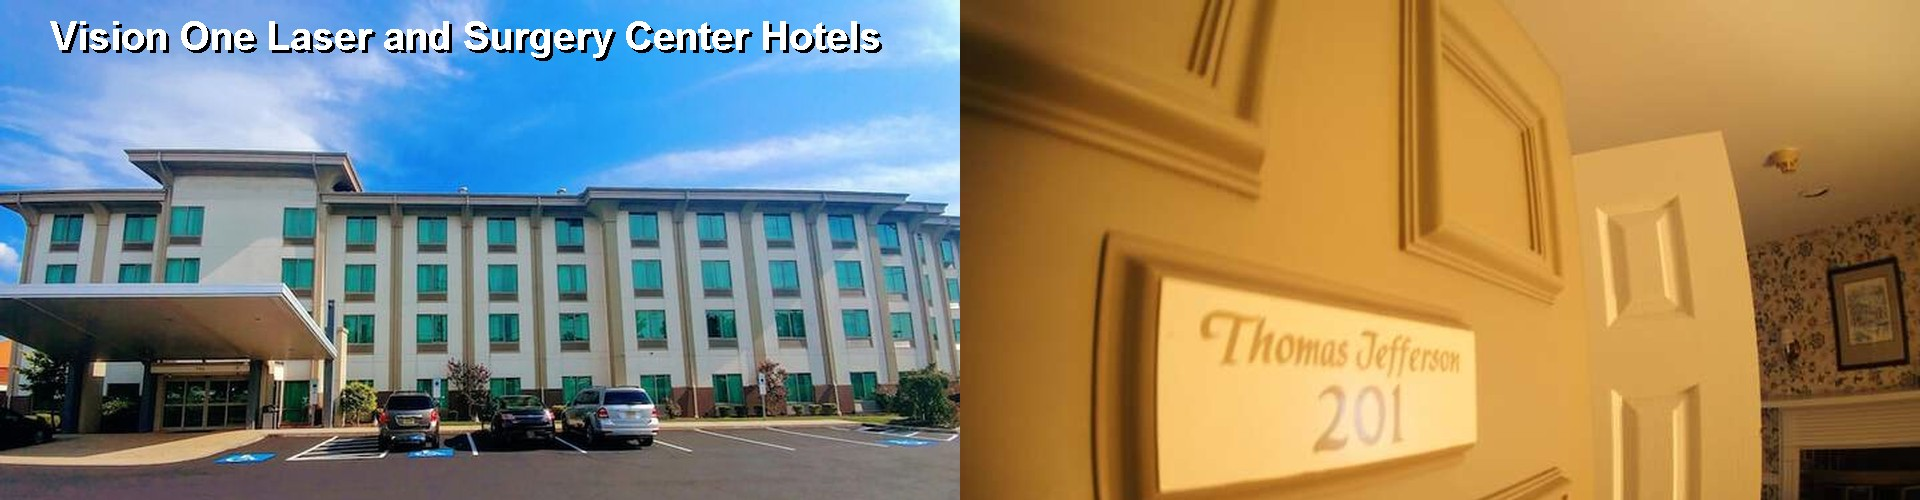 5 Best Hotels near Vision One Laser and Surgery Center